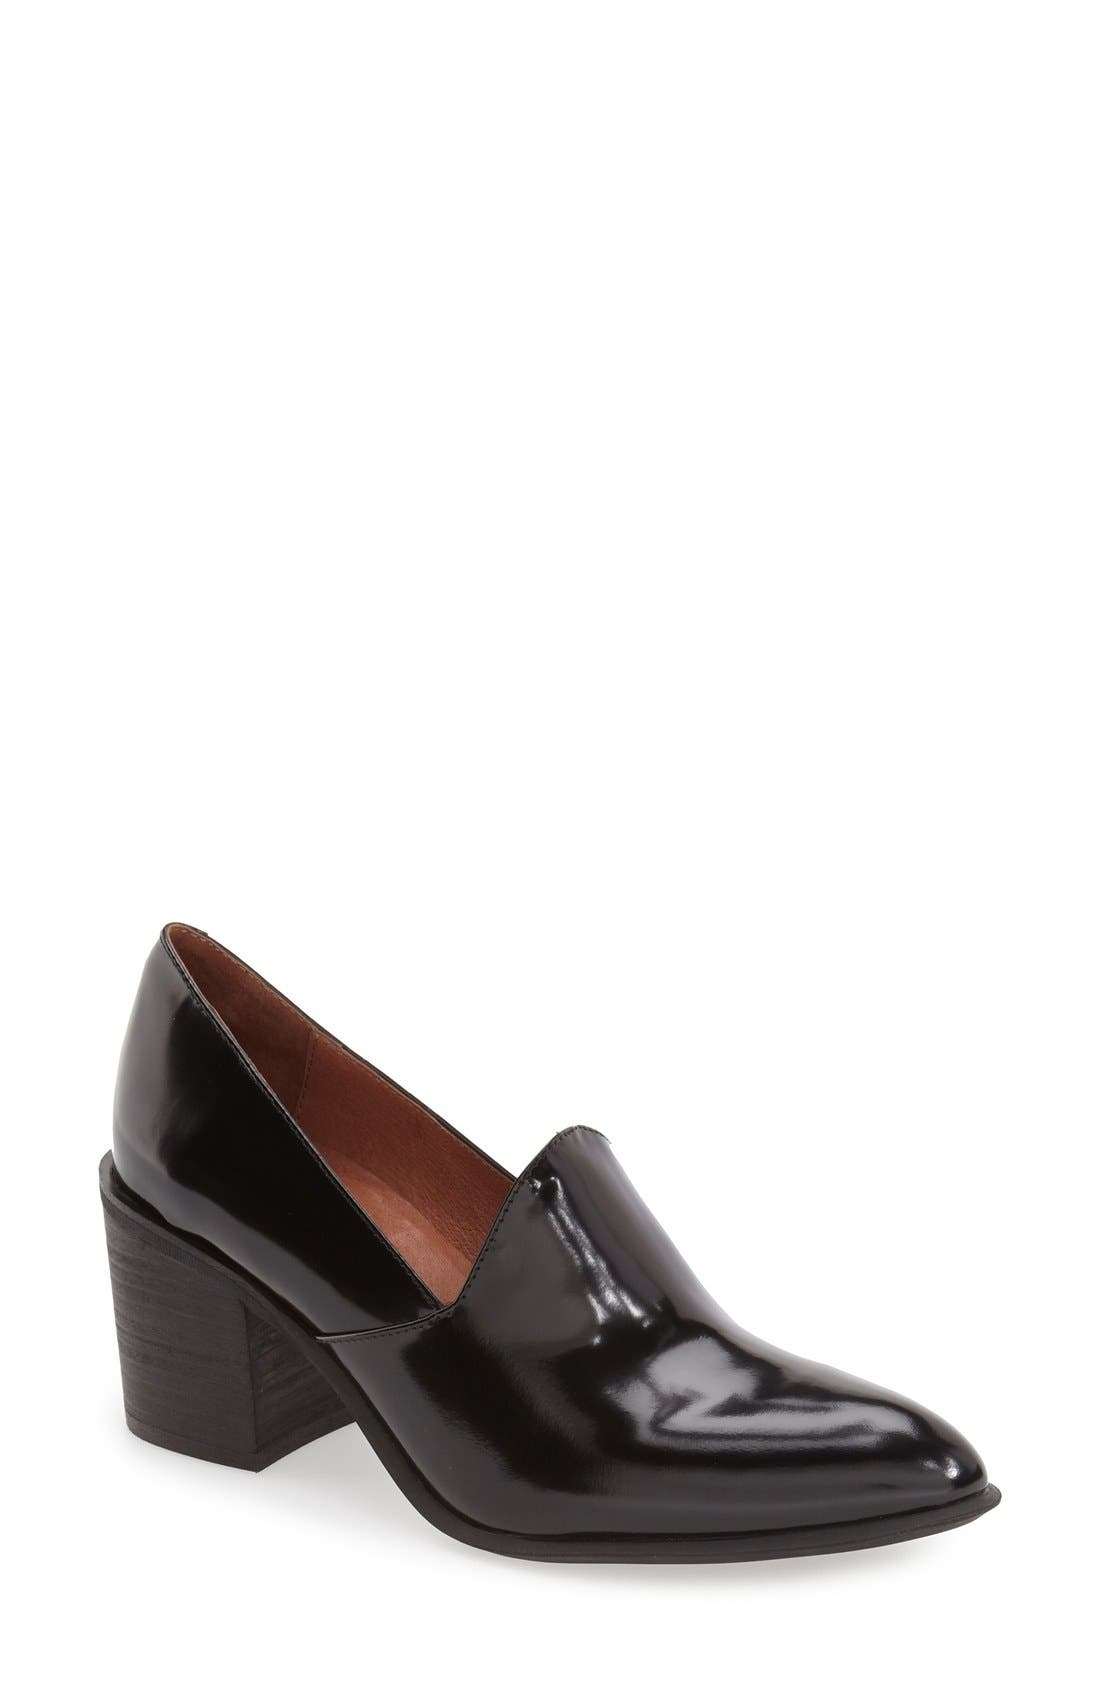 JEFFREY CAMPBELL 'Dante' Pointy Toe Loafer Pump, Main, color, 001